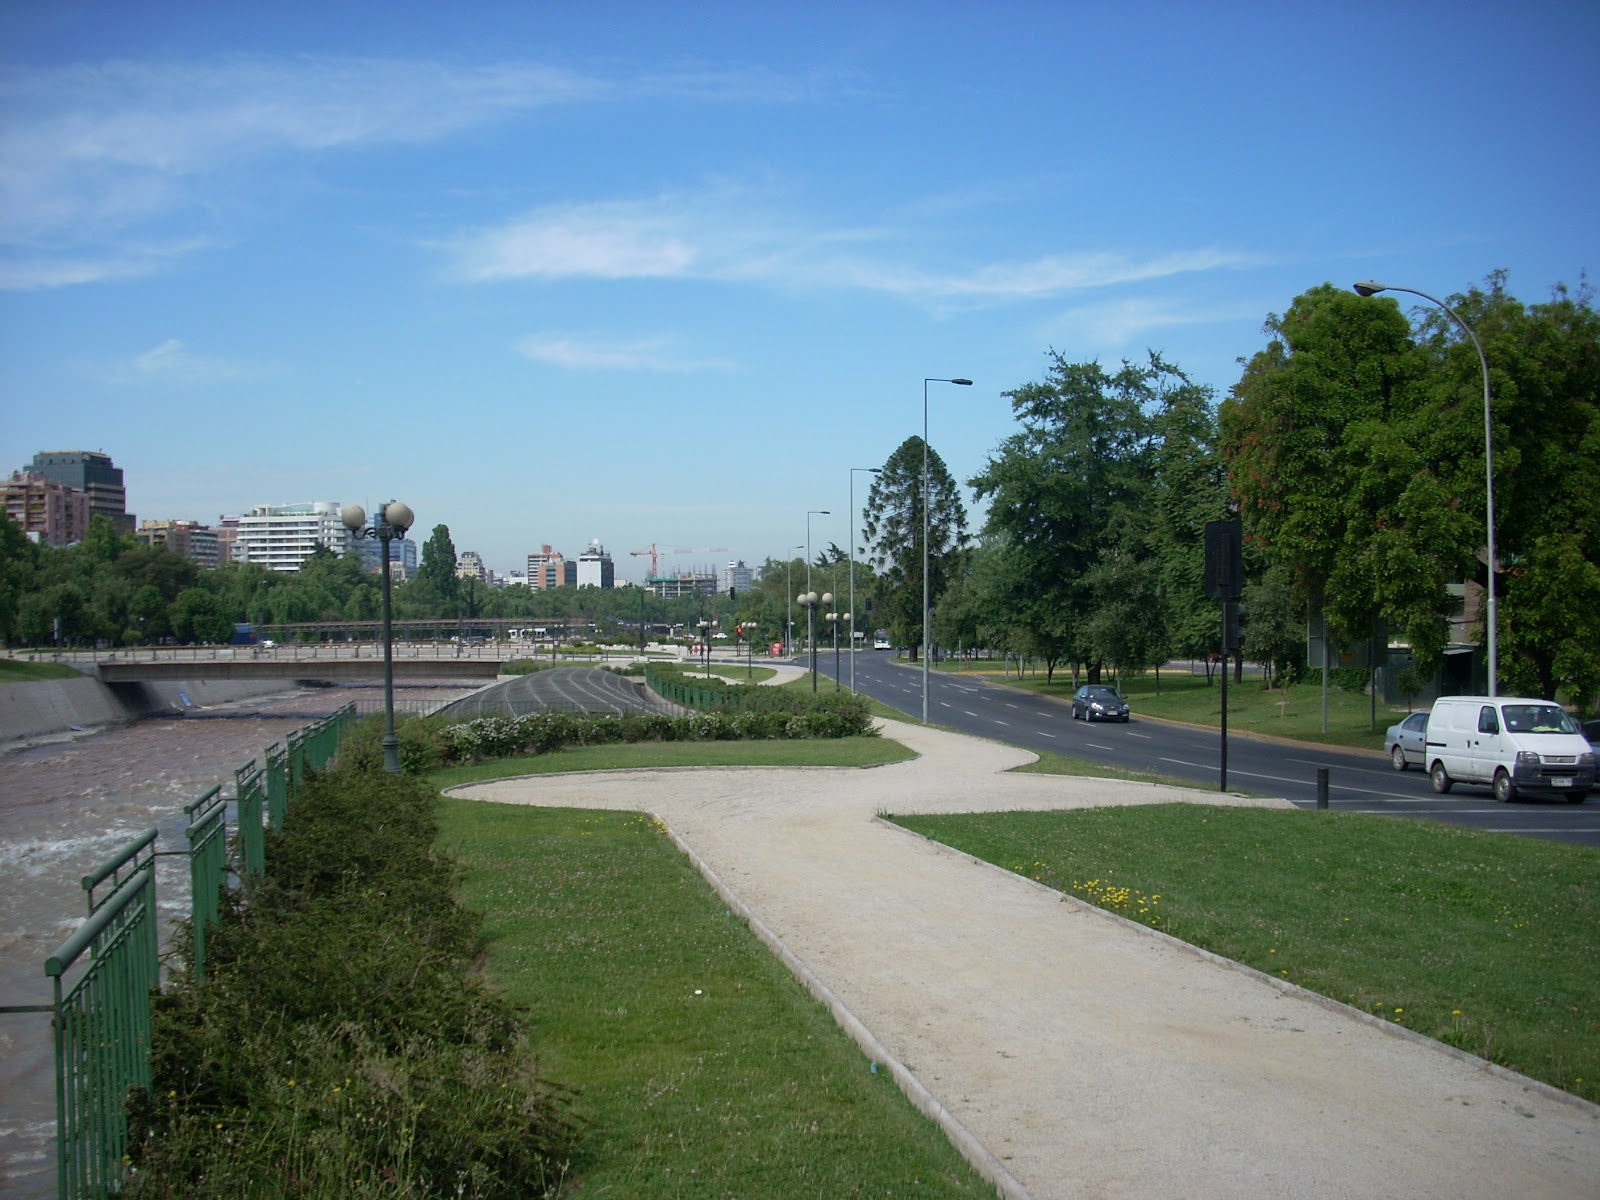 A park like this ran along much of the river running through the city, with paths well suited to bikes, and many Chilenos out on their bikes using them